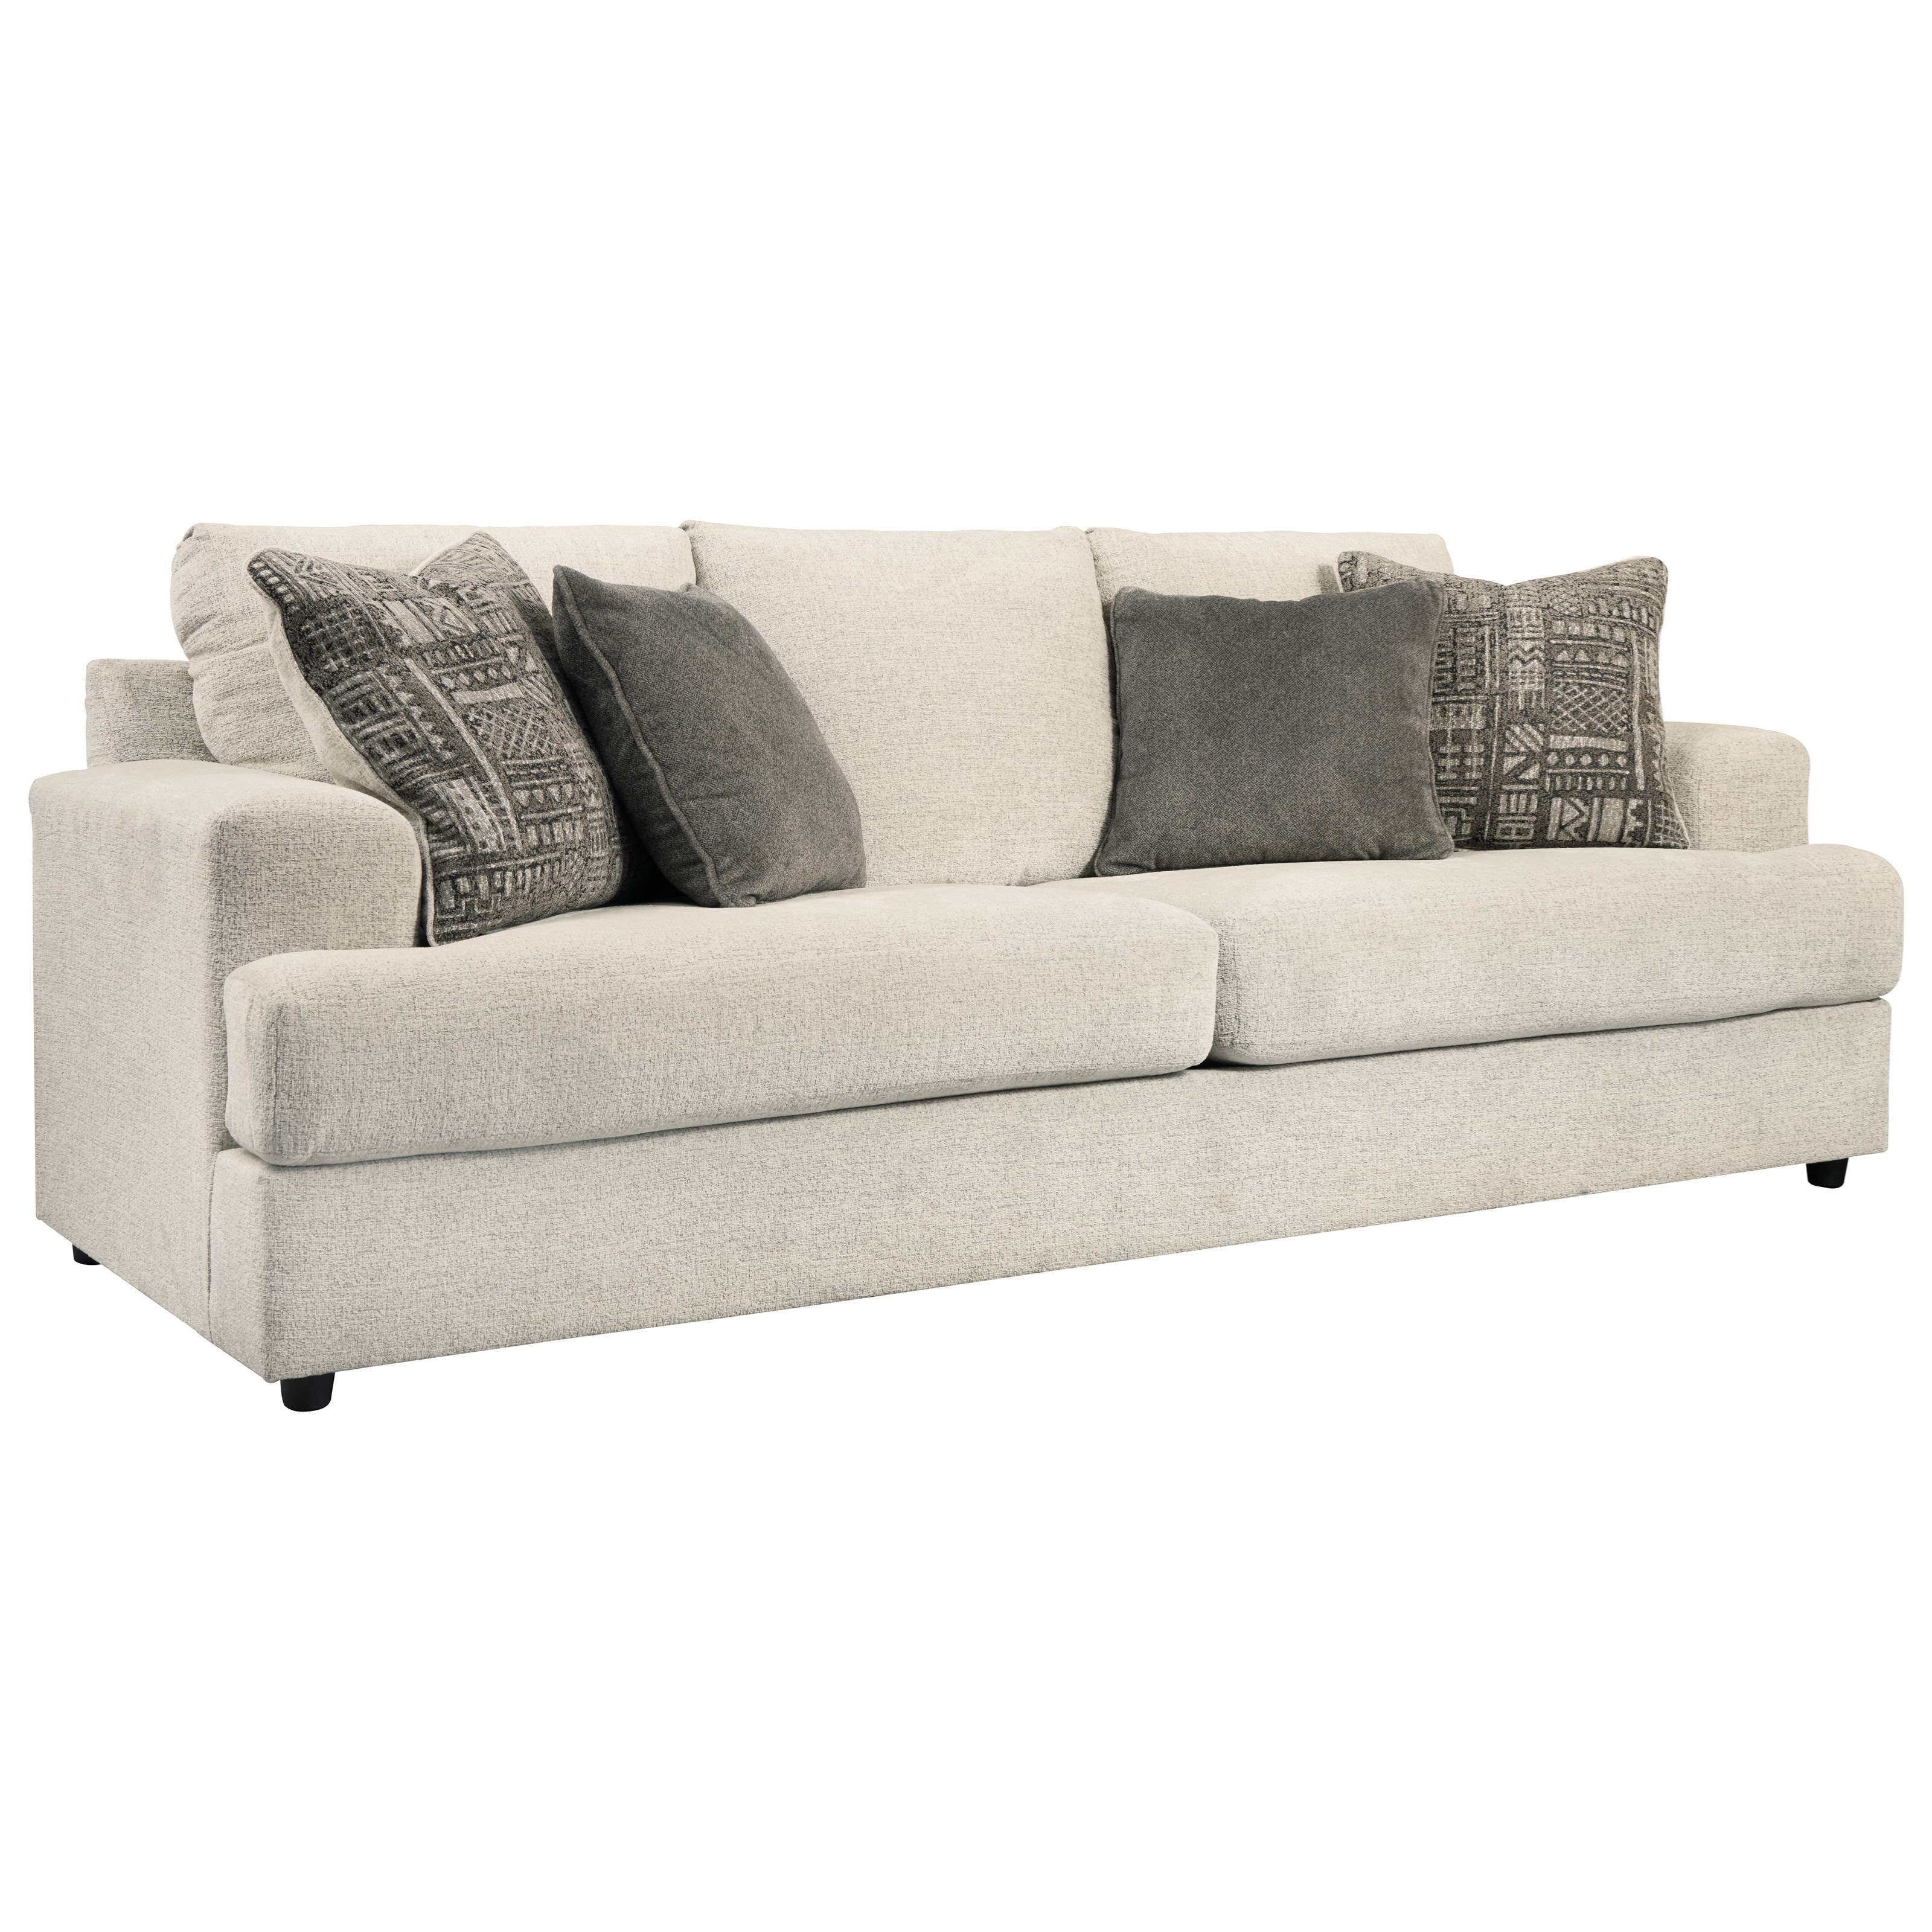 - Signature Design By Ashley Soletren Contemporary Queen Sofa